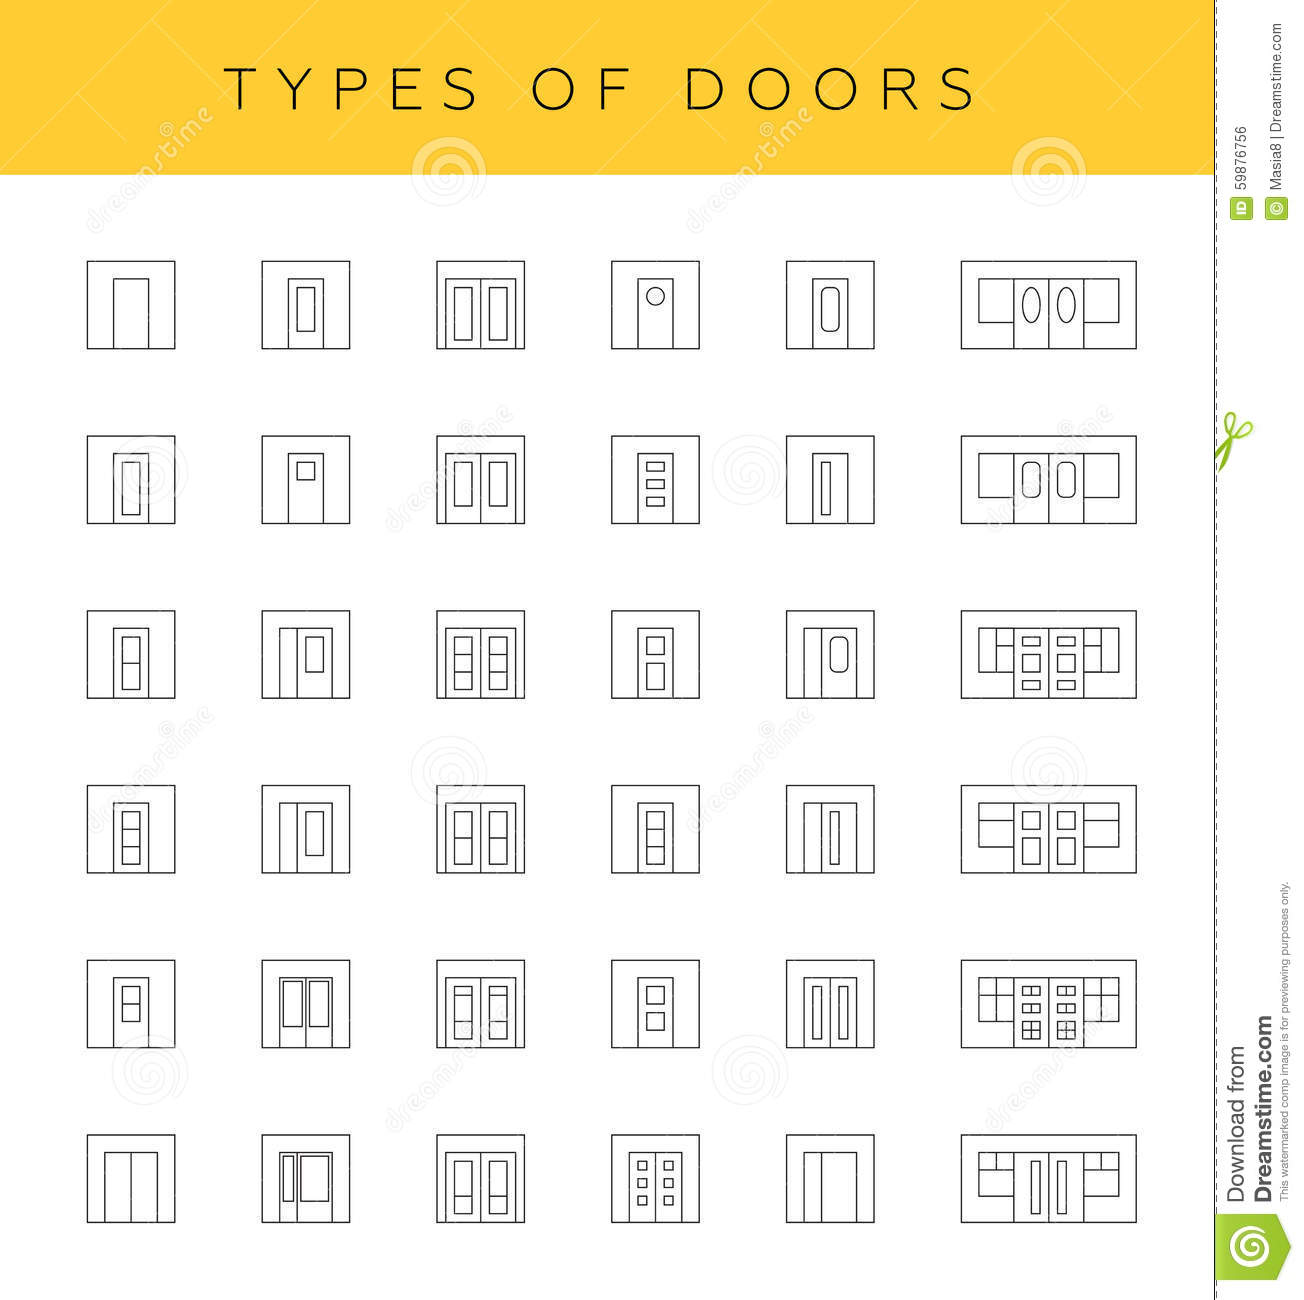 Types of doors stock illustration image of interior for Types of doors